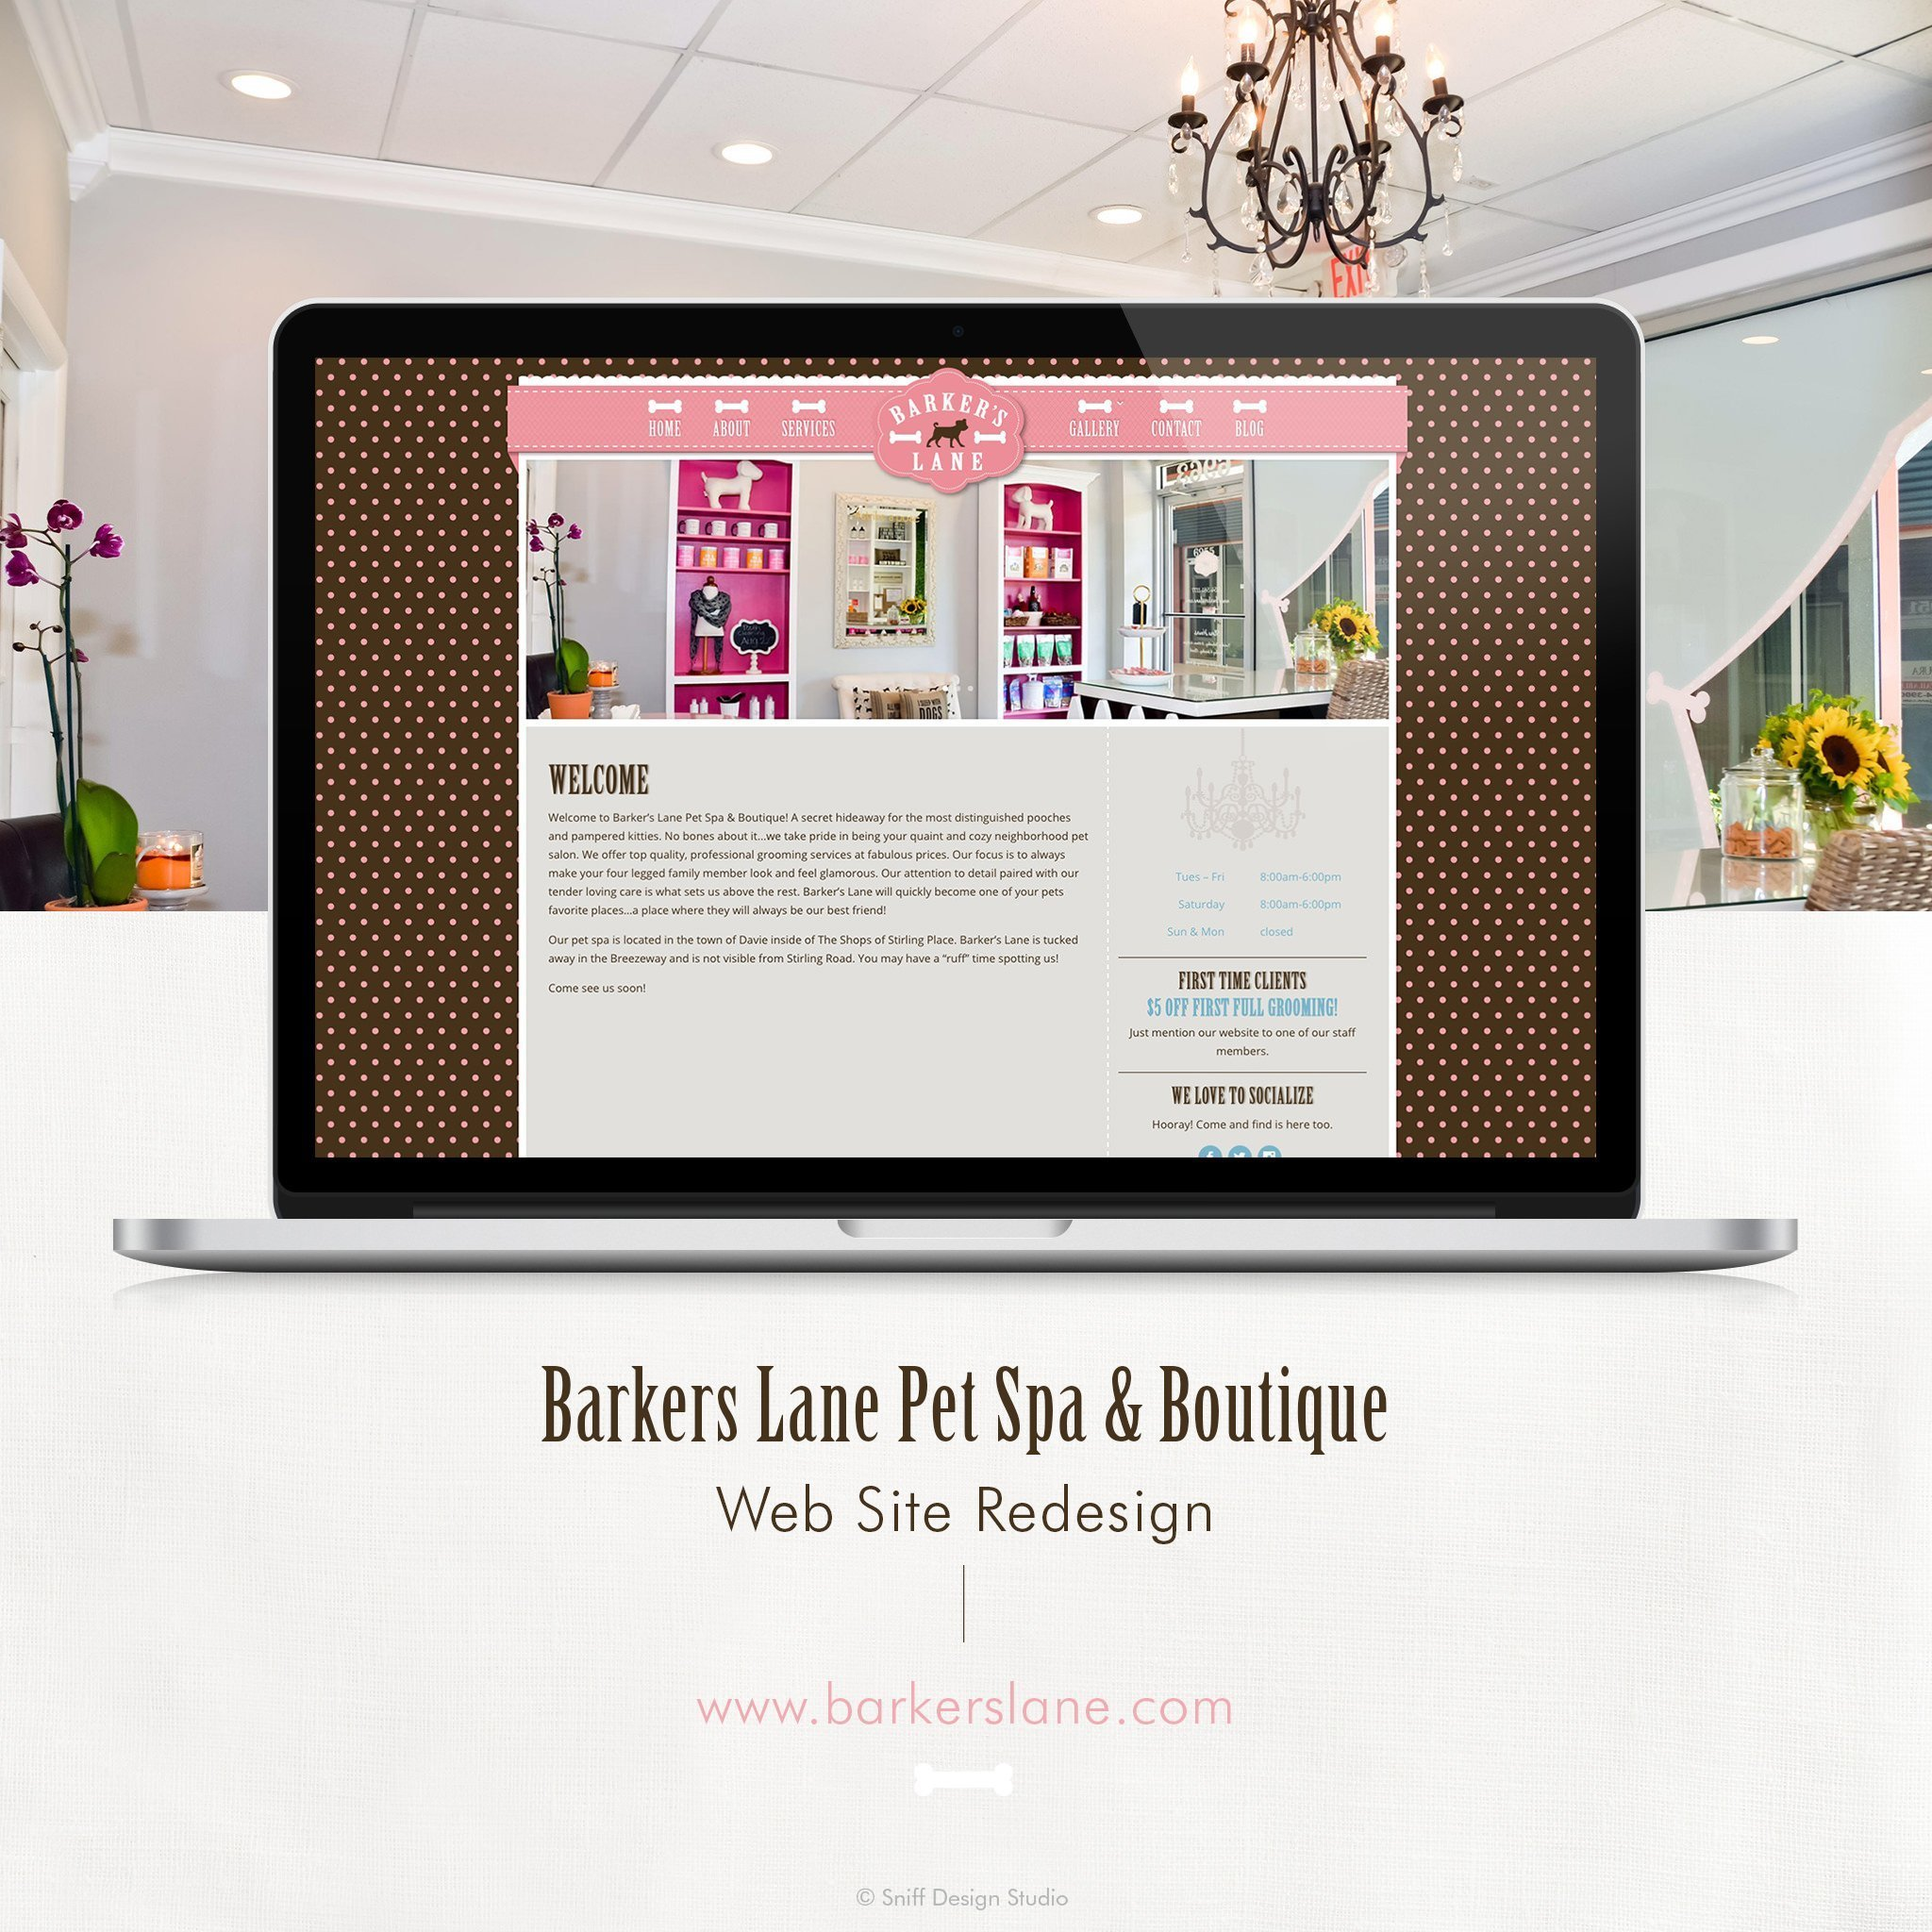 Barkers-Lane-New-Web-Site-Design-by-Sniff-Design-Studio